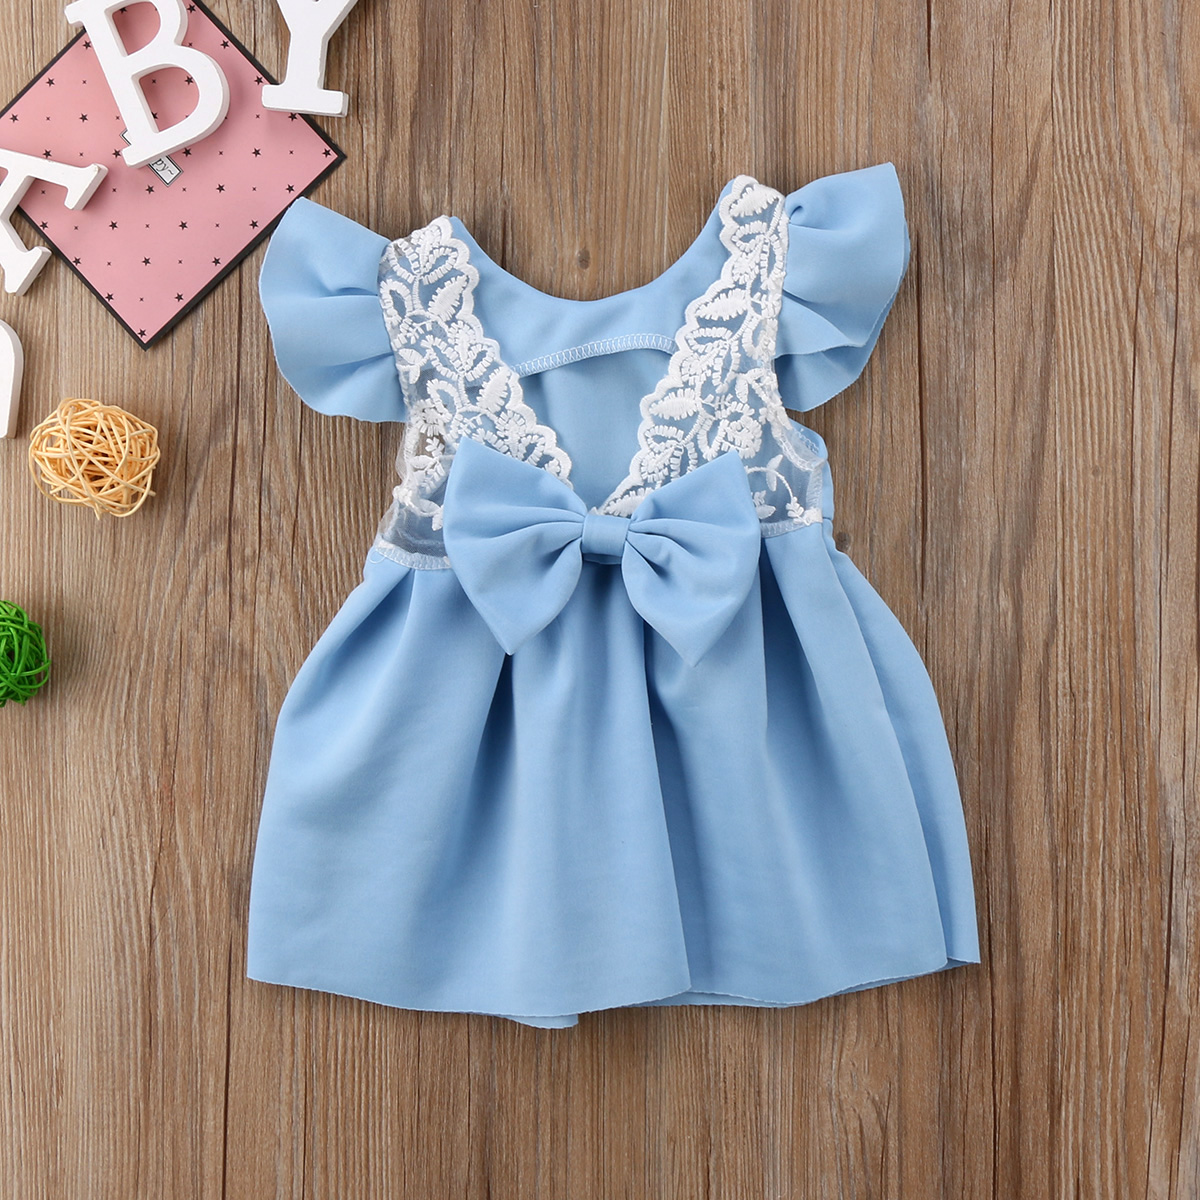 Casual Summer Infant Toddler Baby Girls Newborn Princess Bow Lace ...